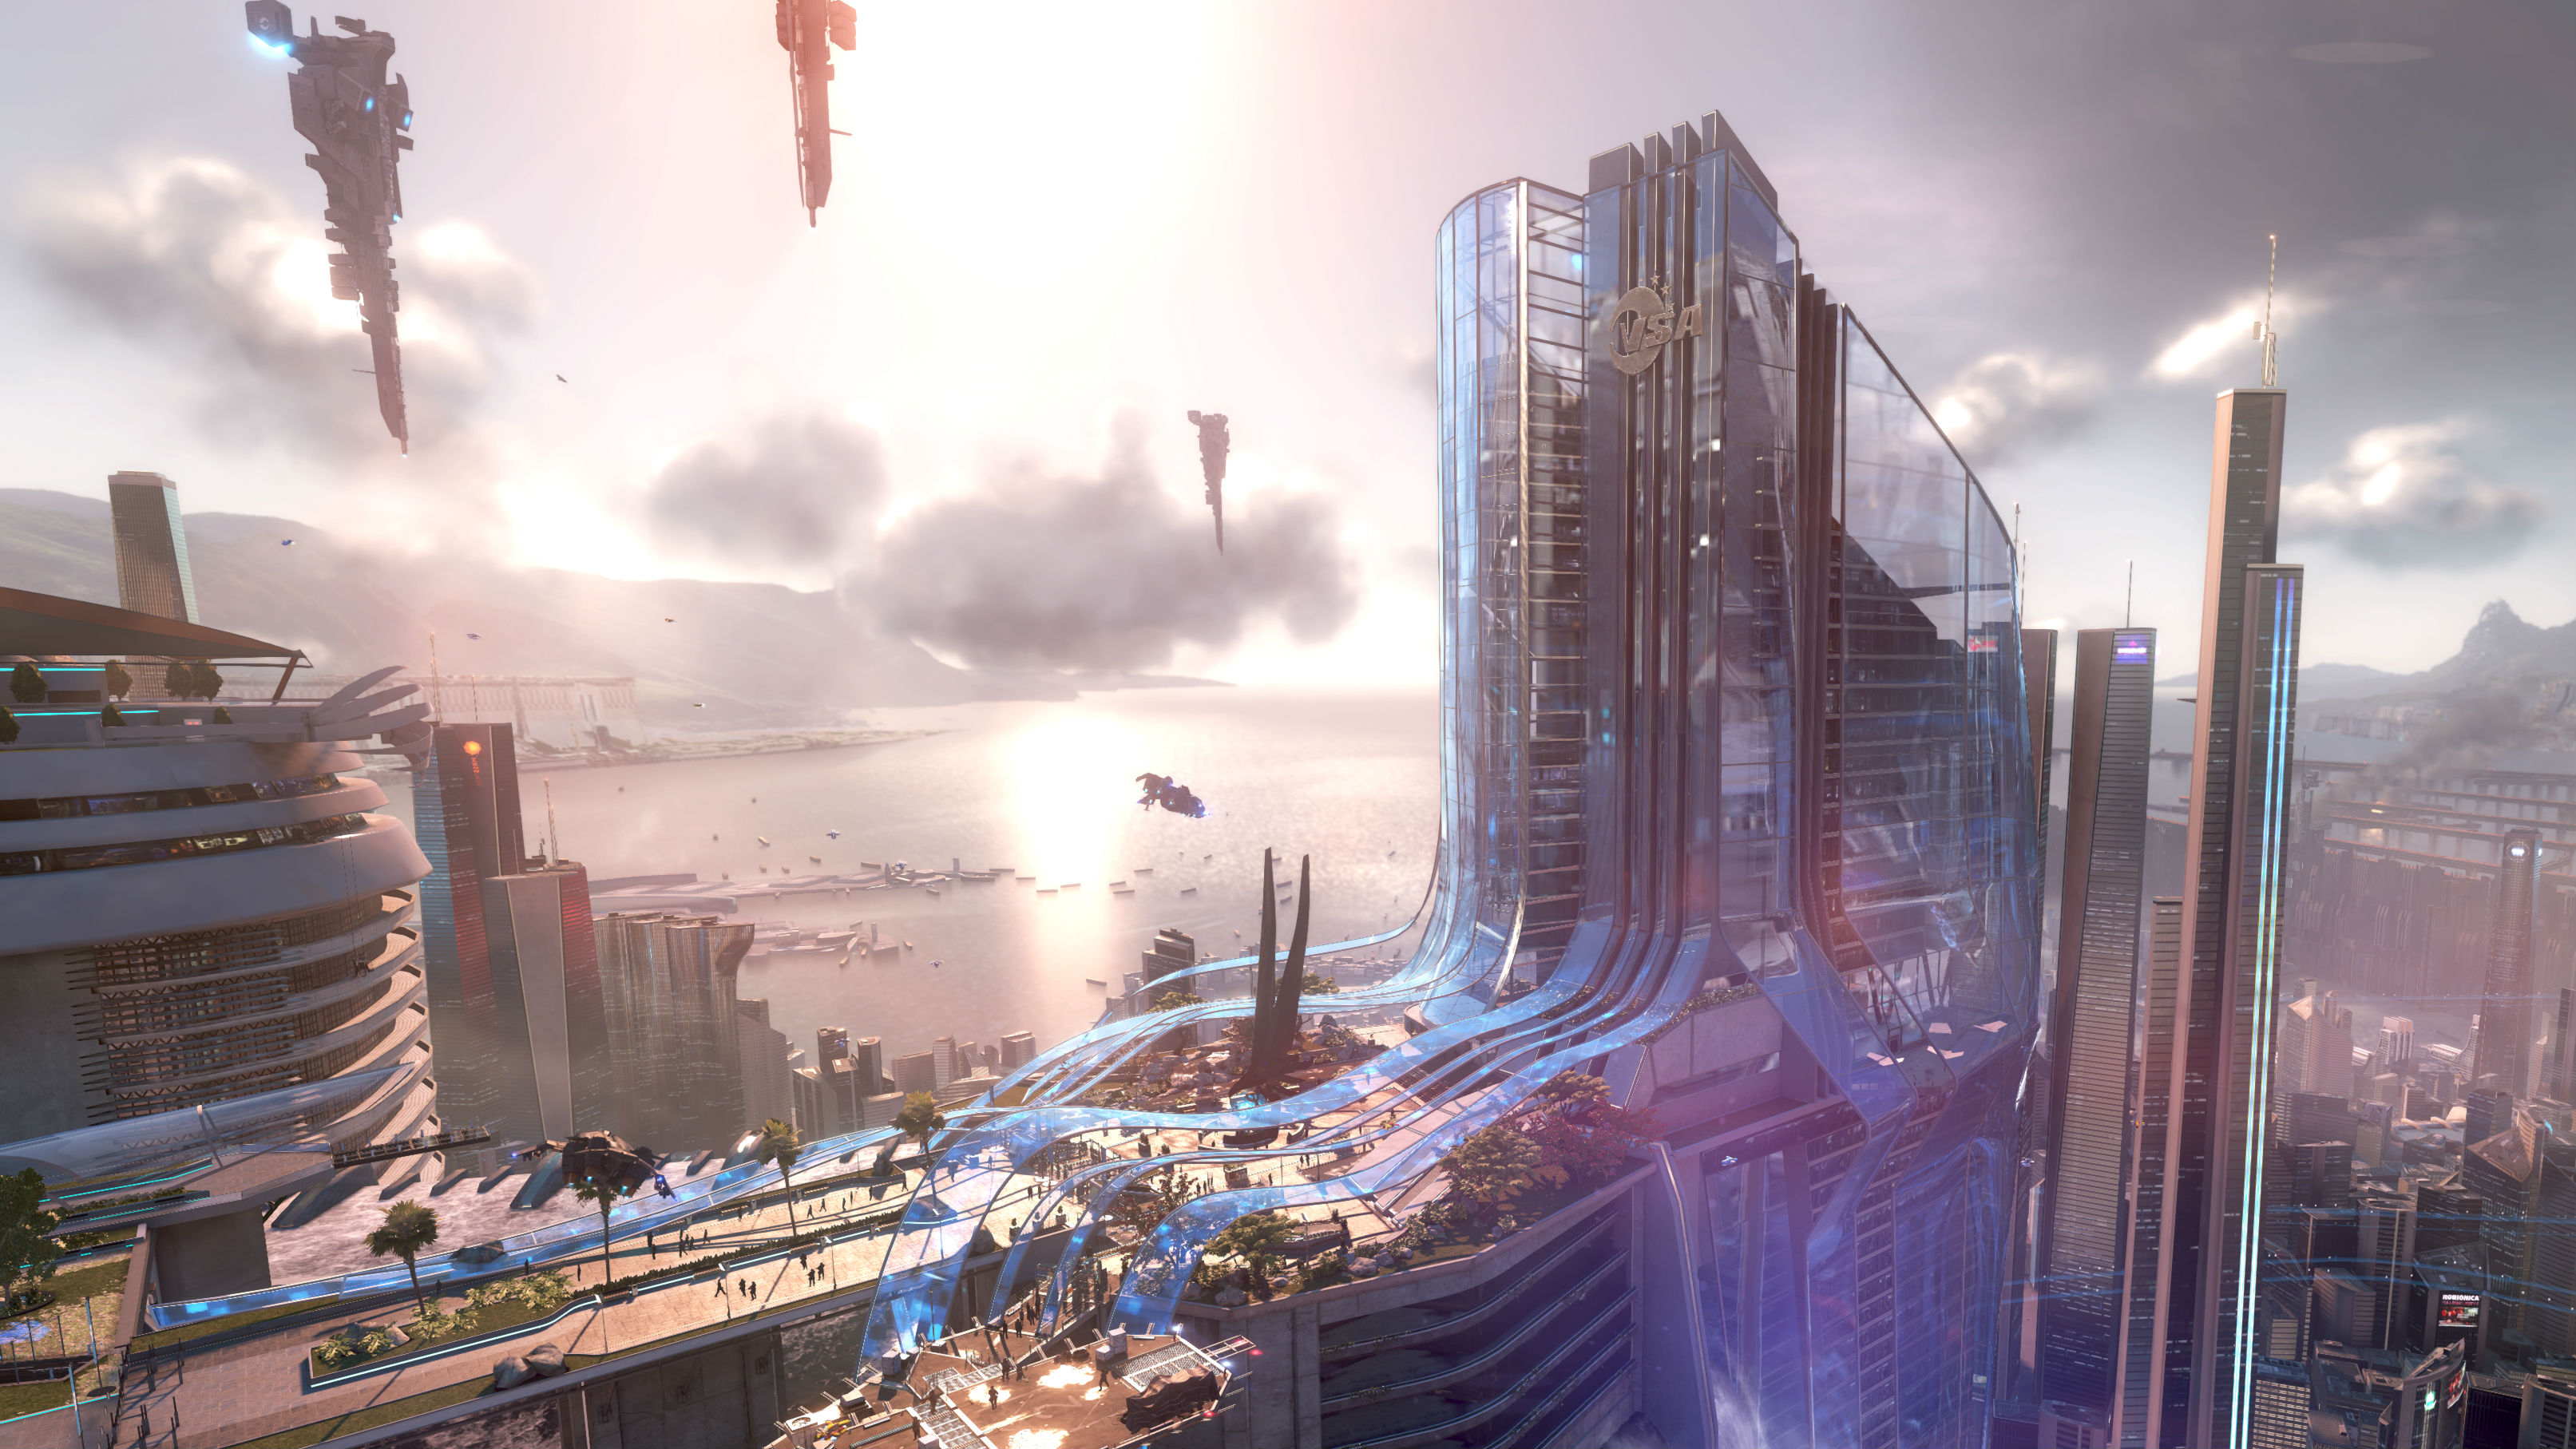 3226x1815 - Sci Fi Building Wallpapers 16